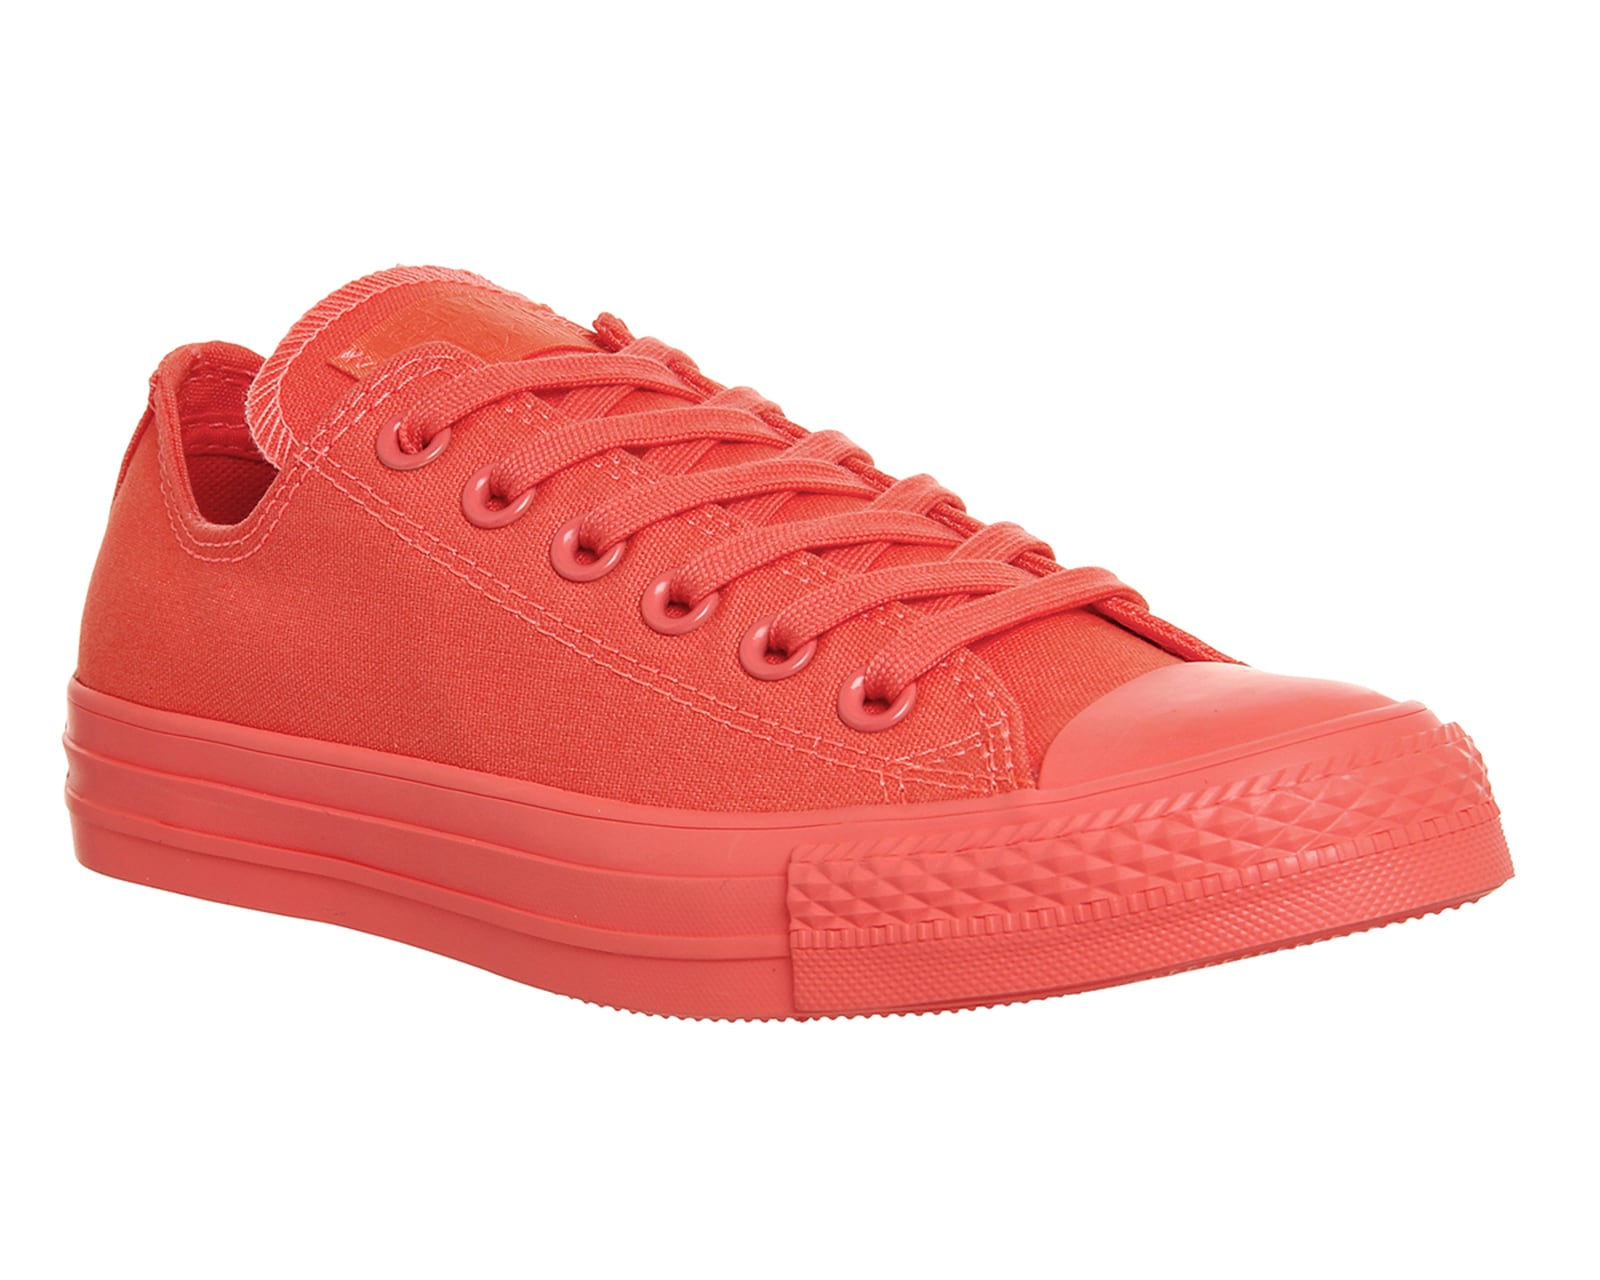 Coral Converse Womens Shoes